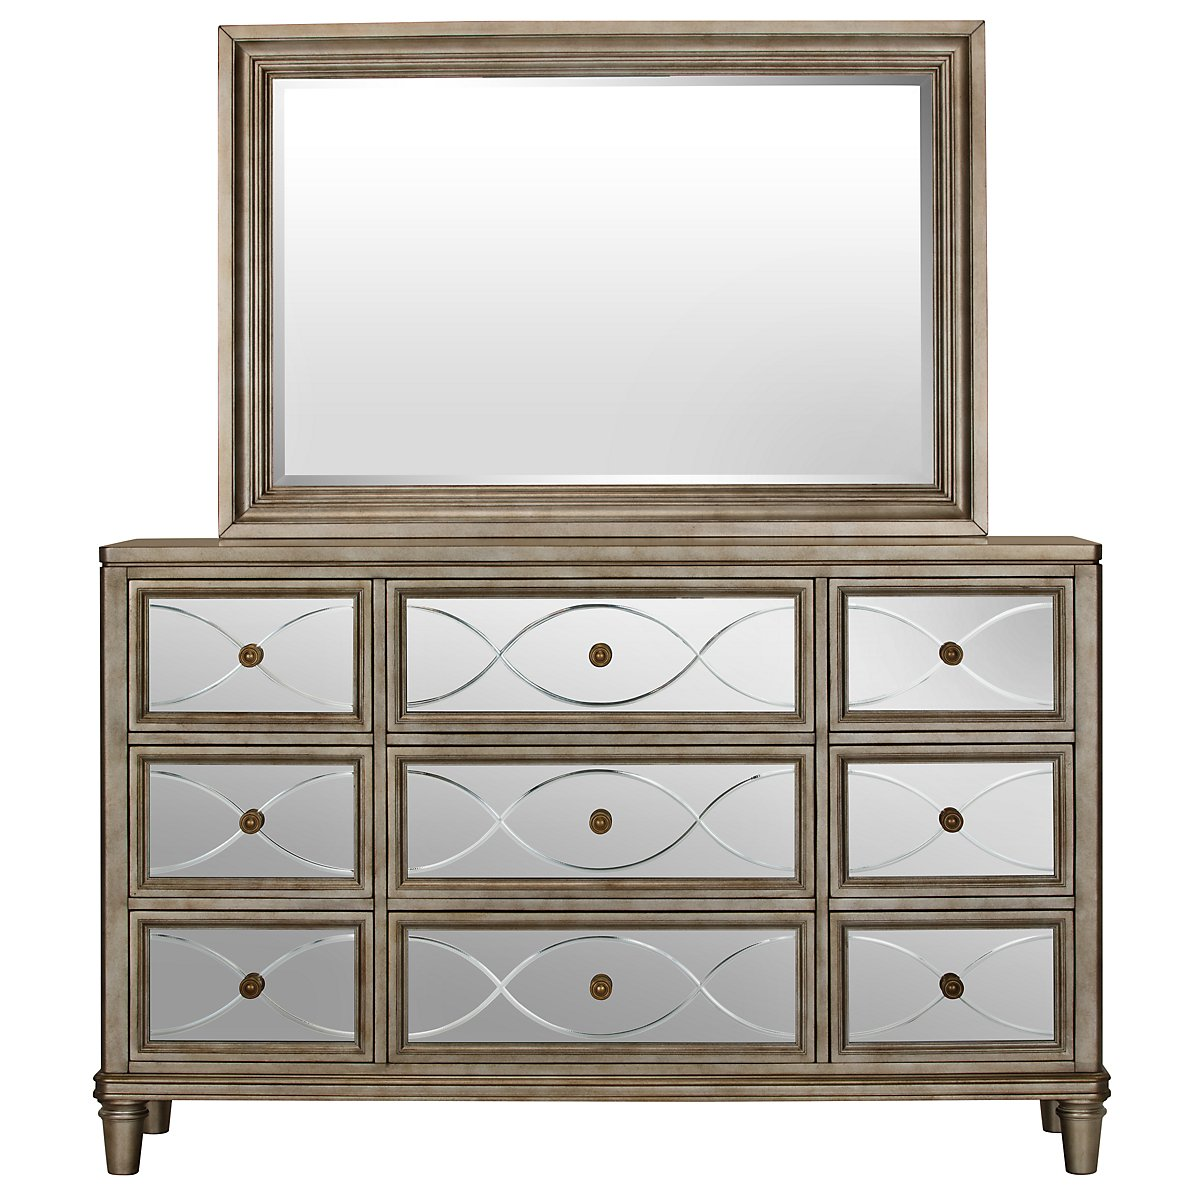 Silver Mirrored Bedroom Furniture Mirror Dressers For Sale